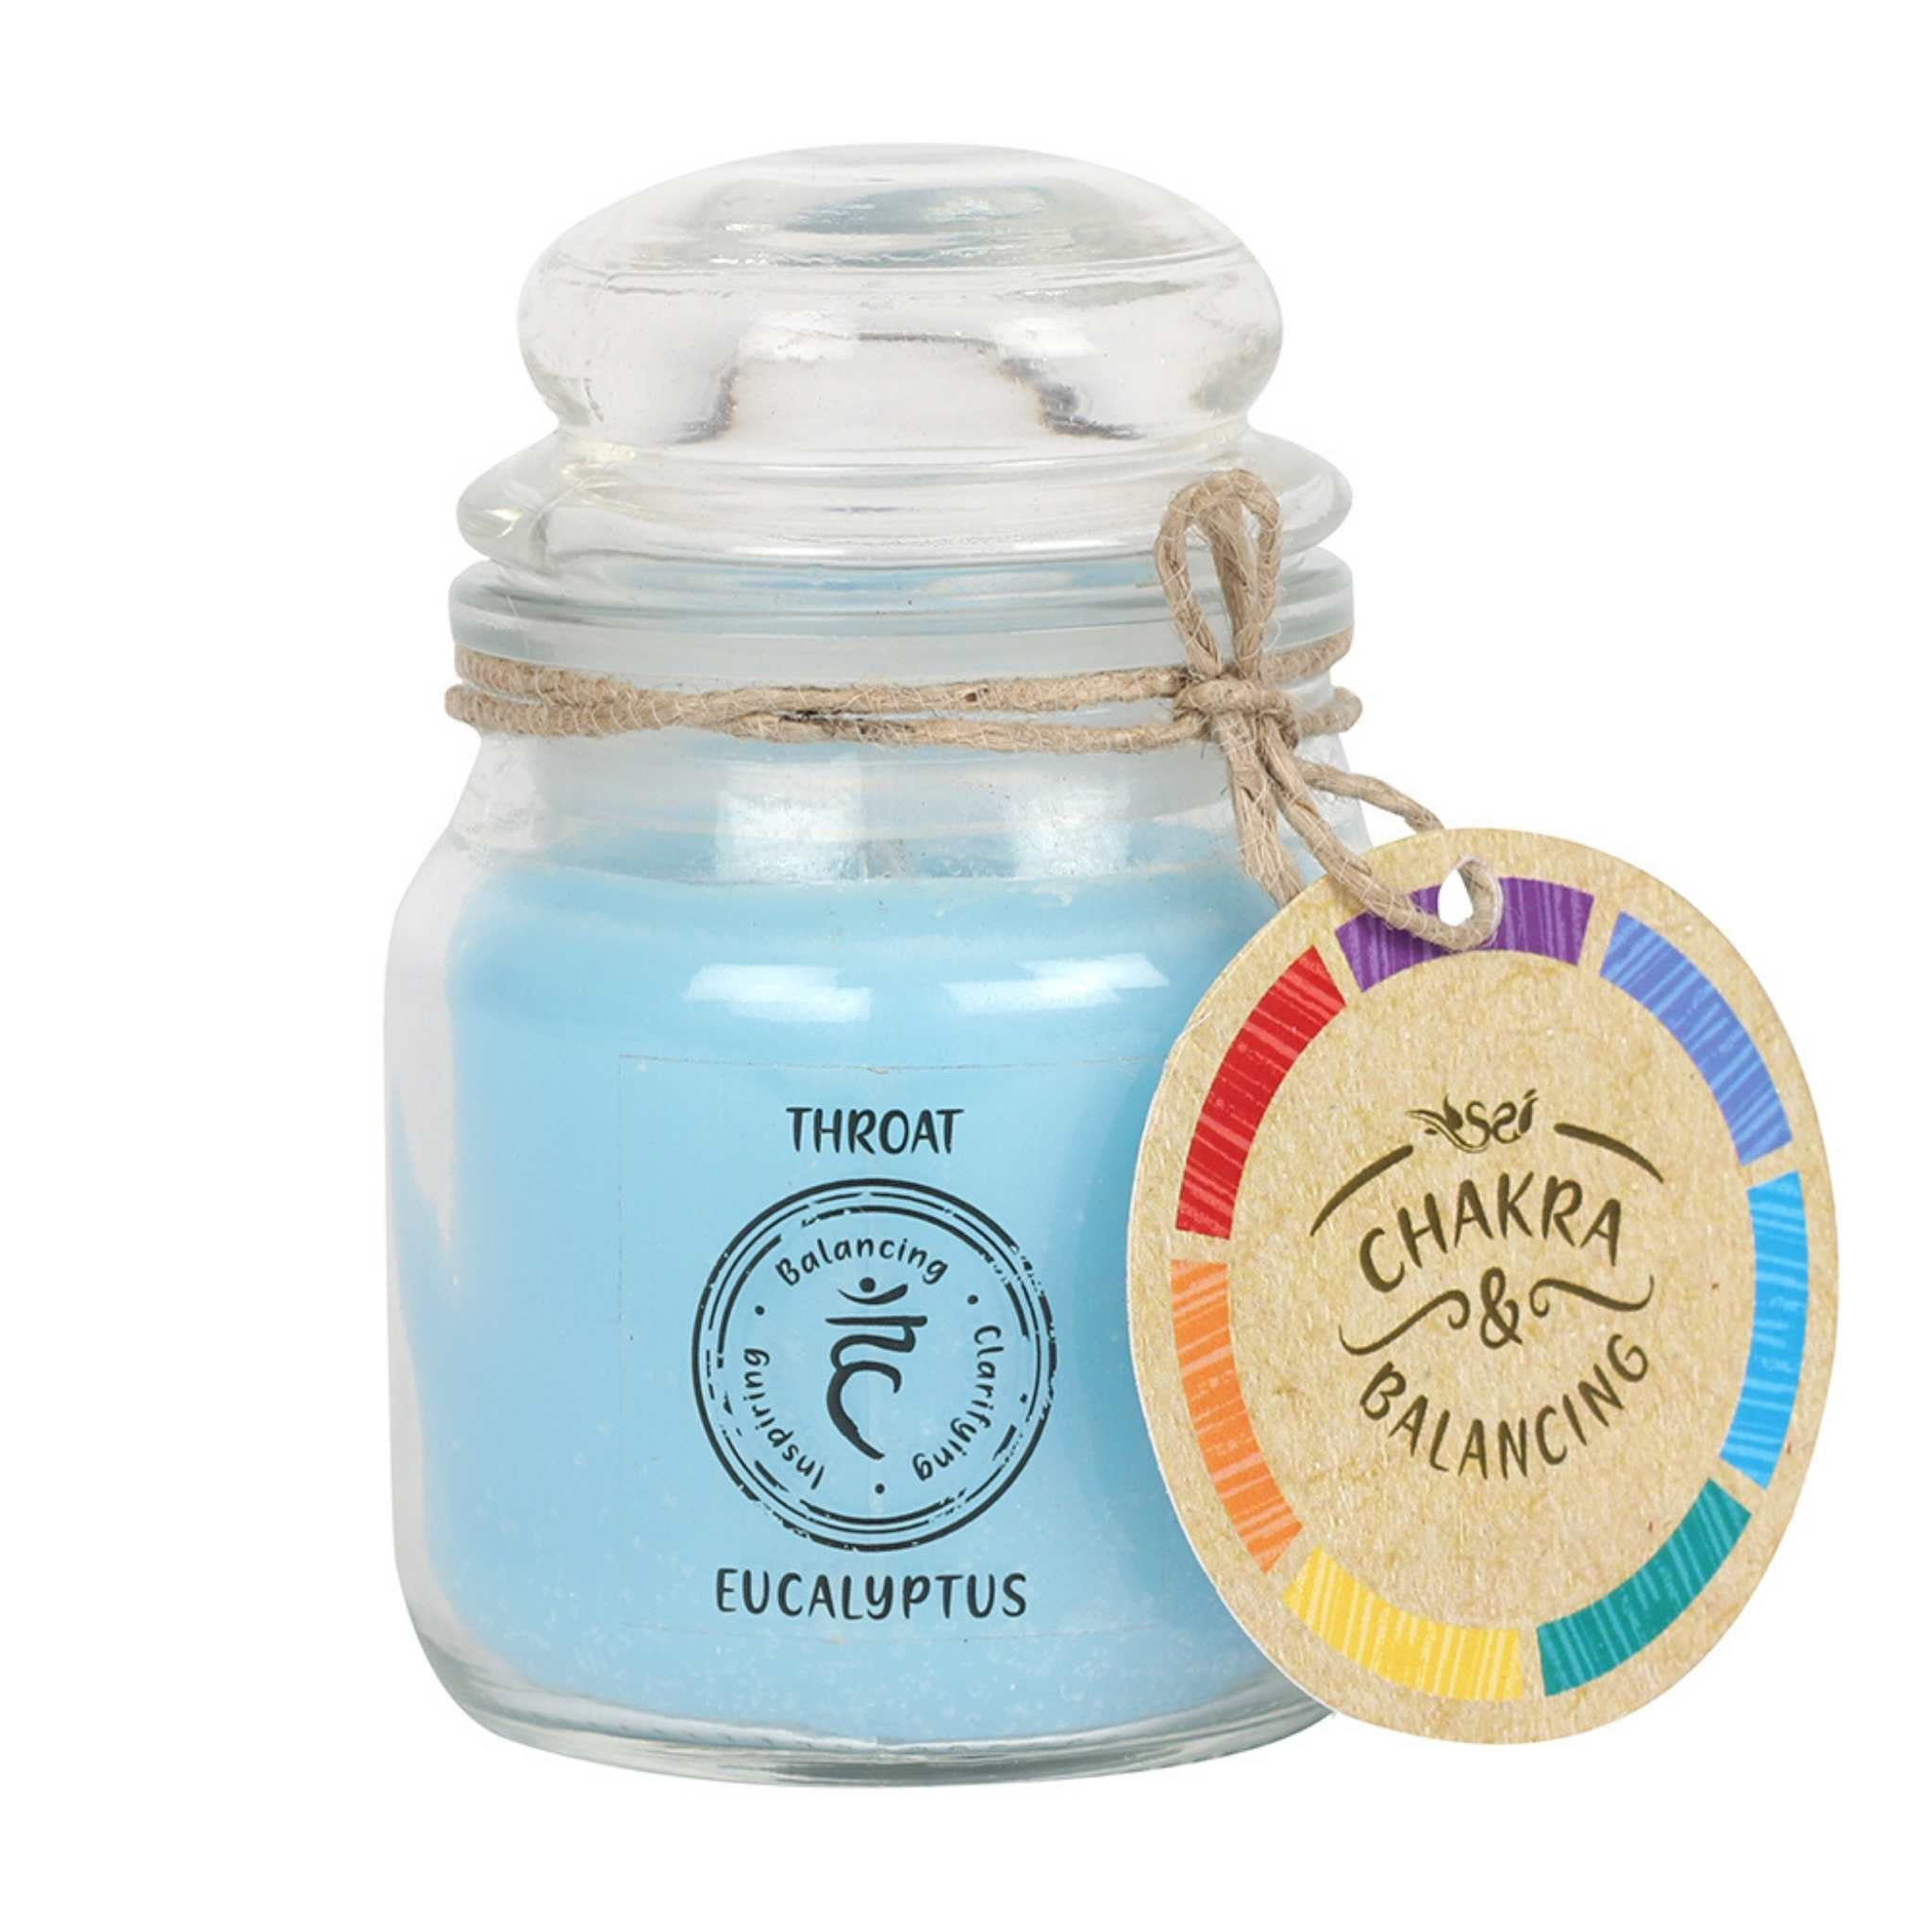 Balancing Chakra Candle in a min glass jar with stopper. Tied with a label that says Chakra Balancing. Candle is blue with a label on the jar that says Throat - Eucalyptus